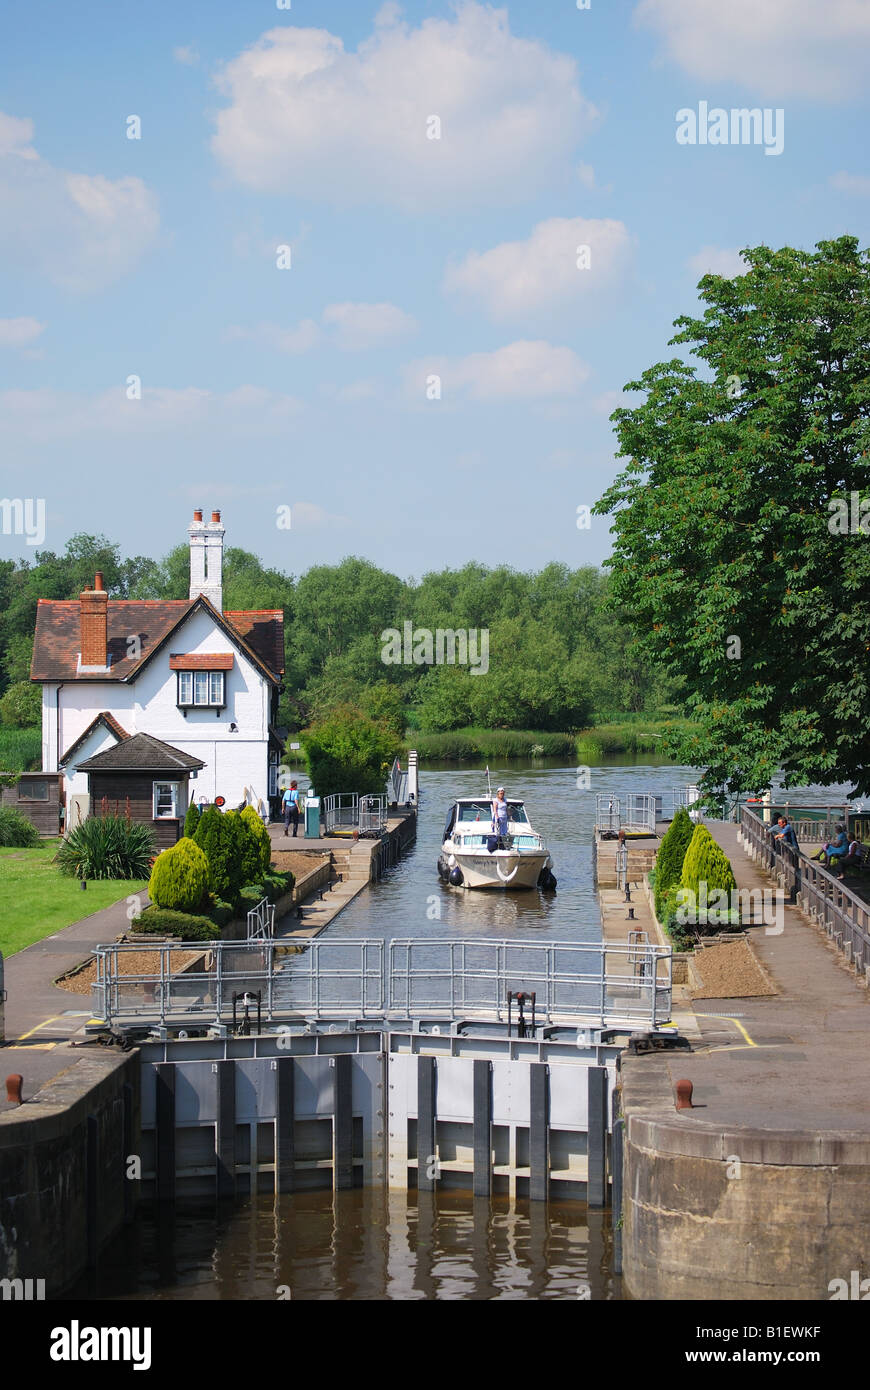 Goring Lock on River Thames, Goring, Oxfordshire. England, United Kingdom - Stock Image